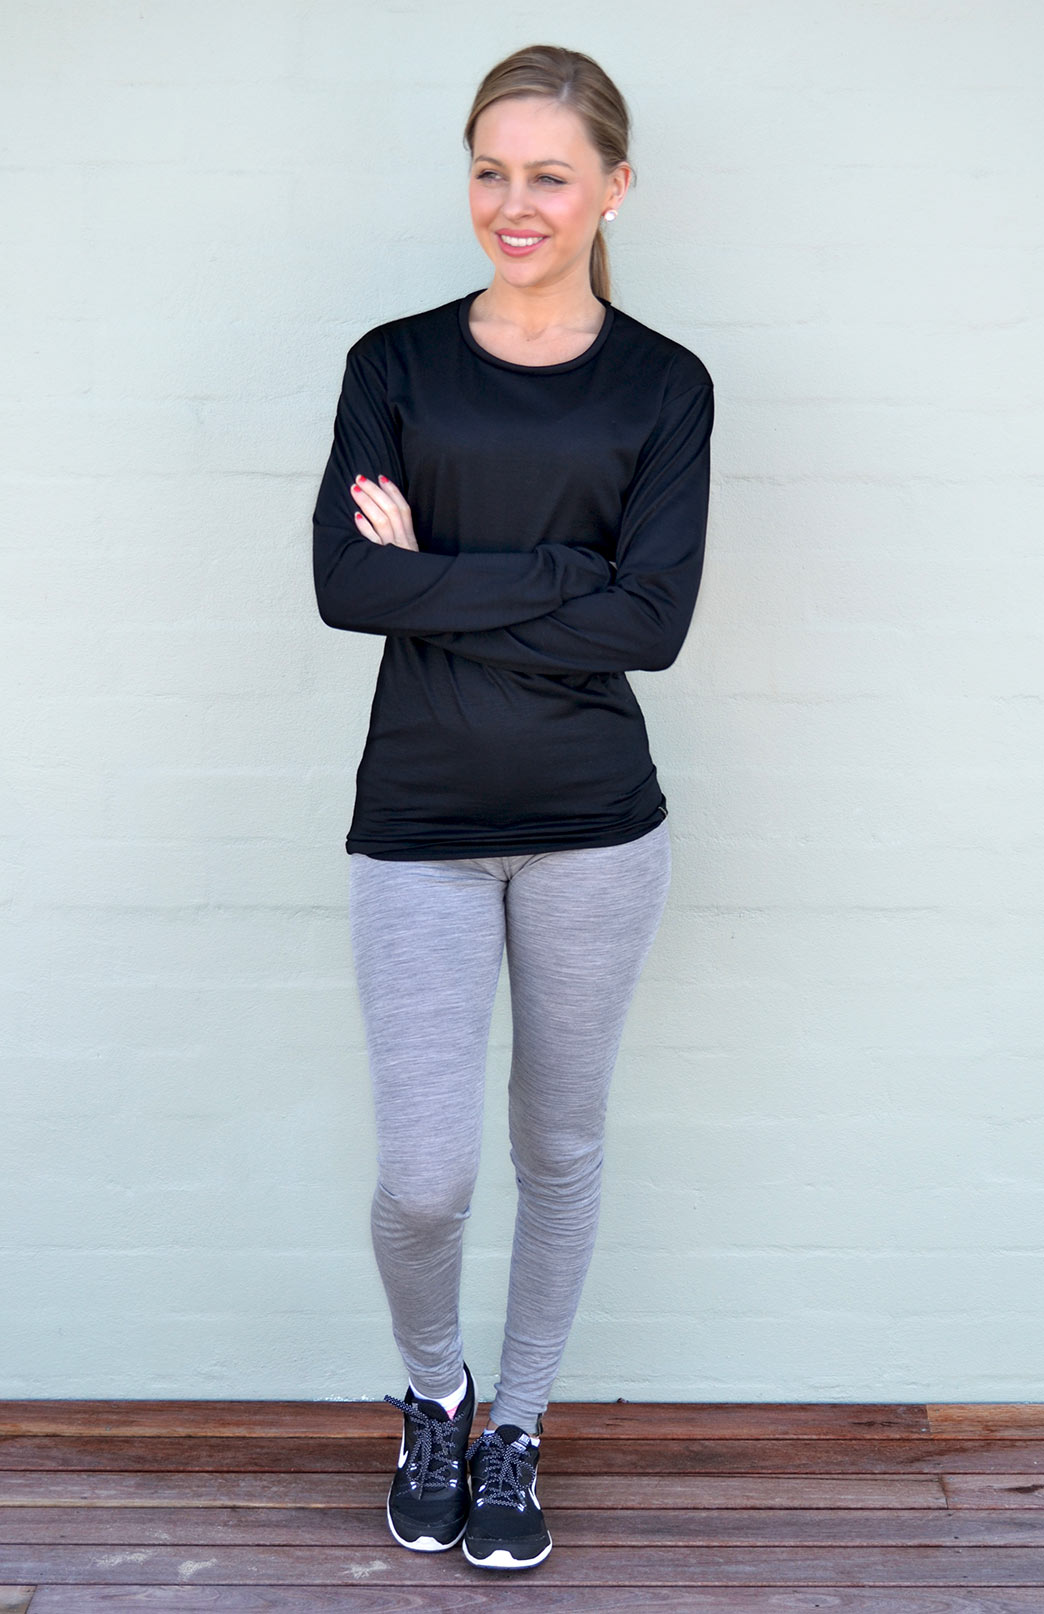 Women's Crew Neck Top - Long Sleeve 170g in Black